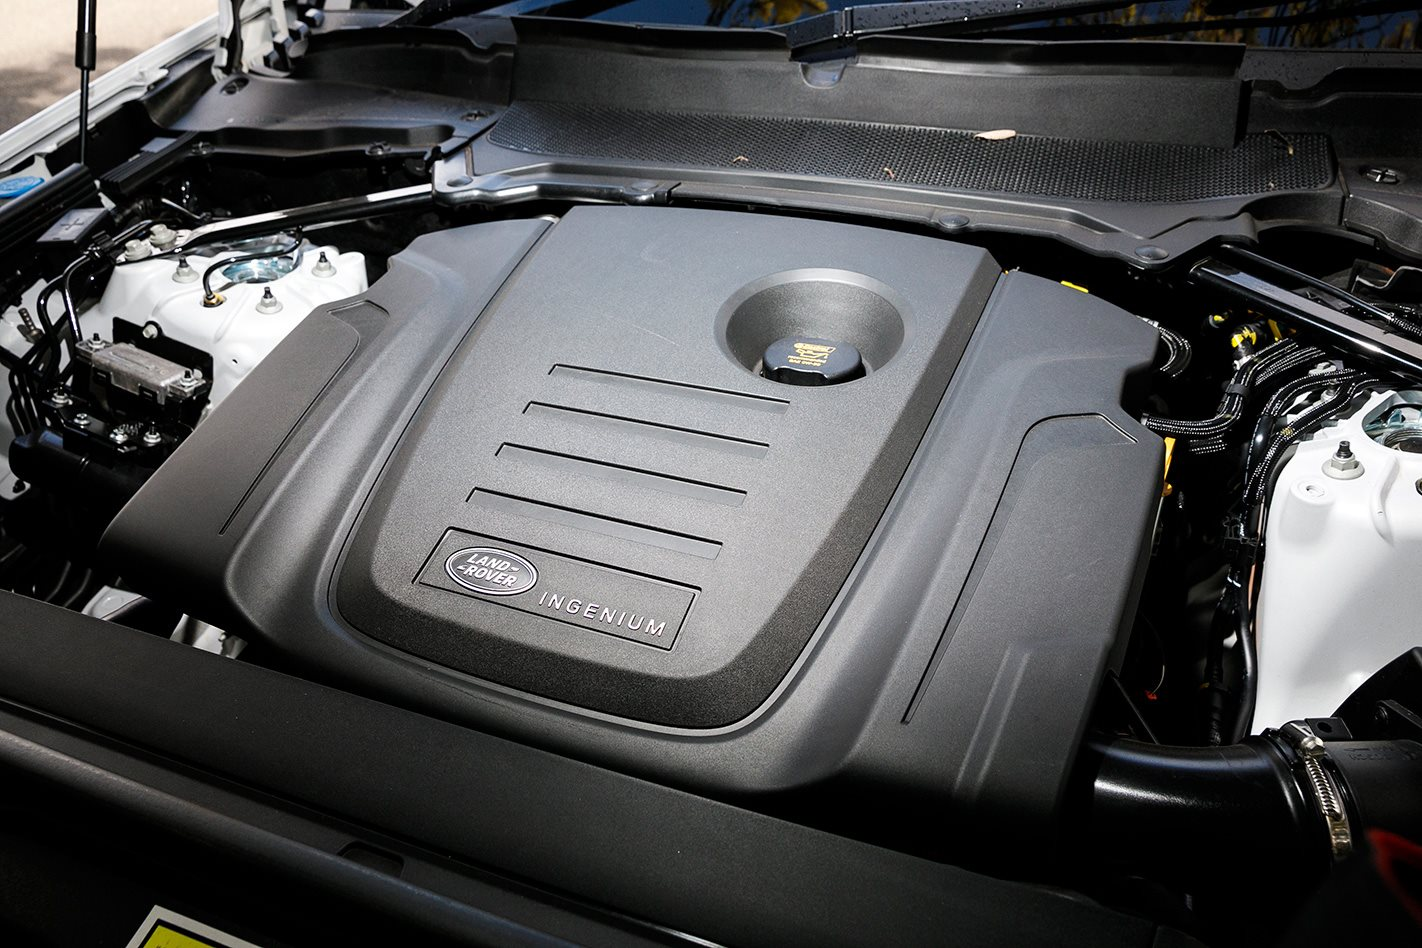 2017 Land Rover Discovery engine.jpg